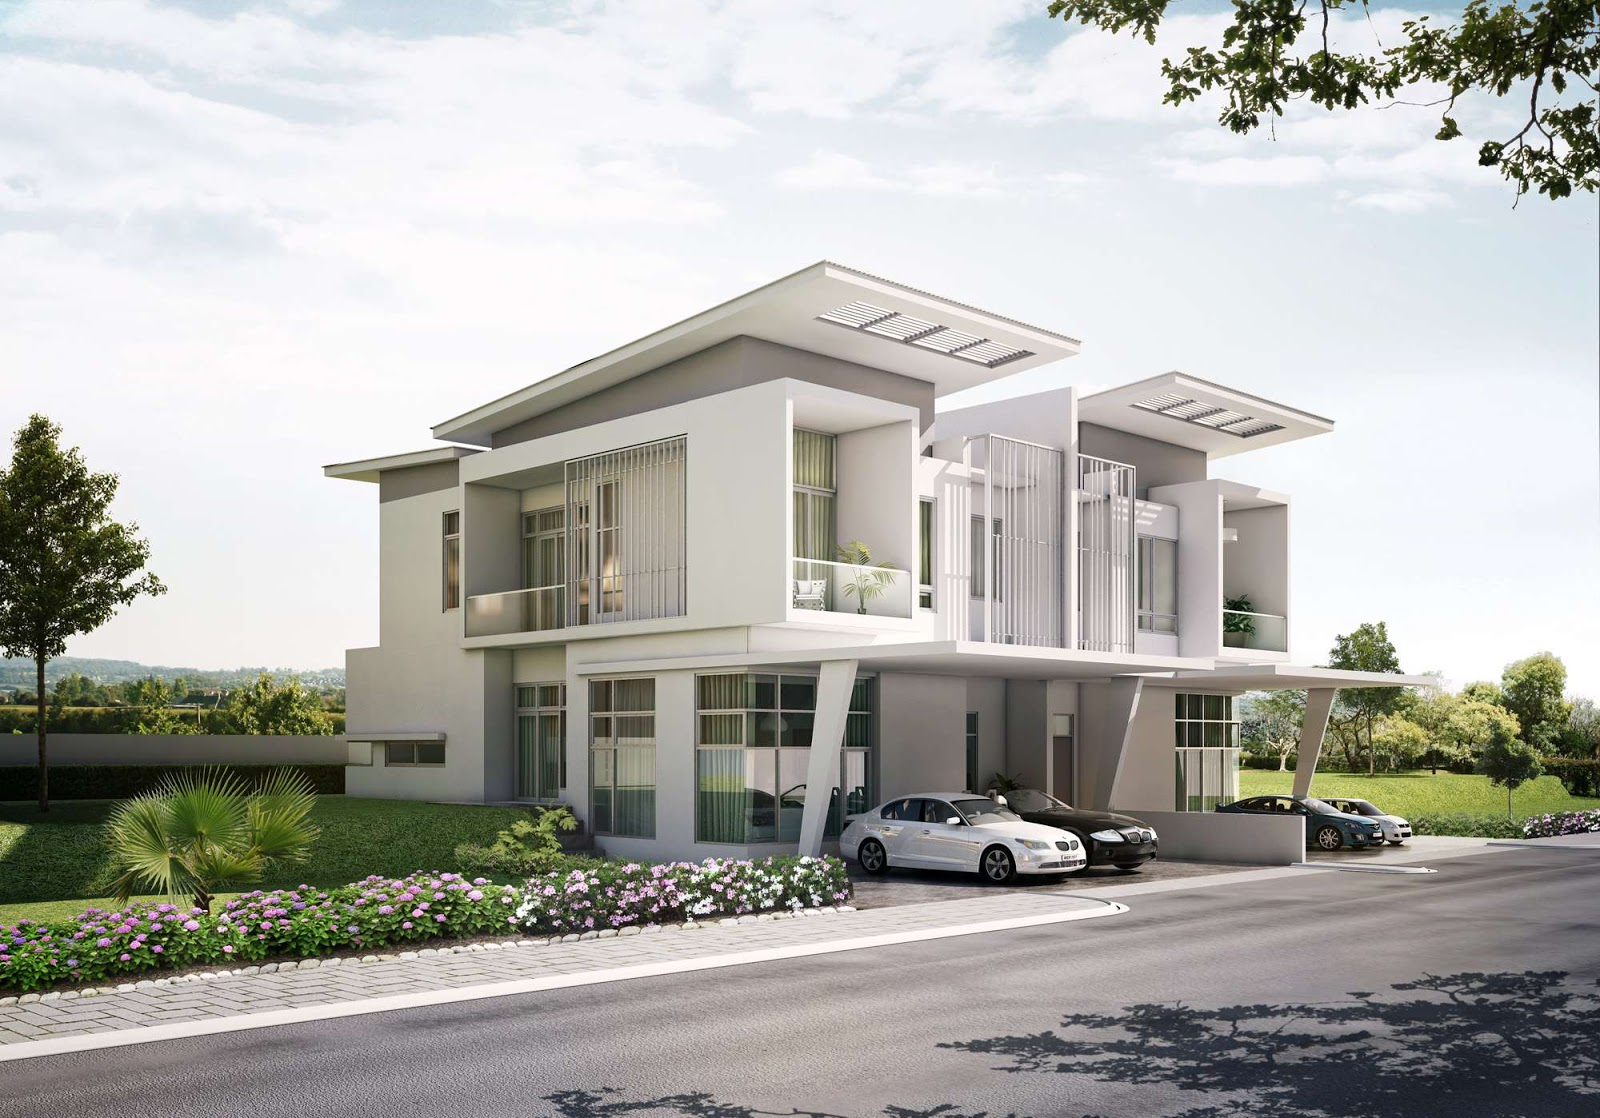 Singapore modern homes exterior designs. | Home Interior Dreams